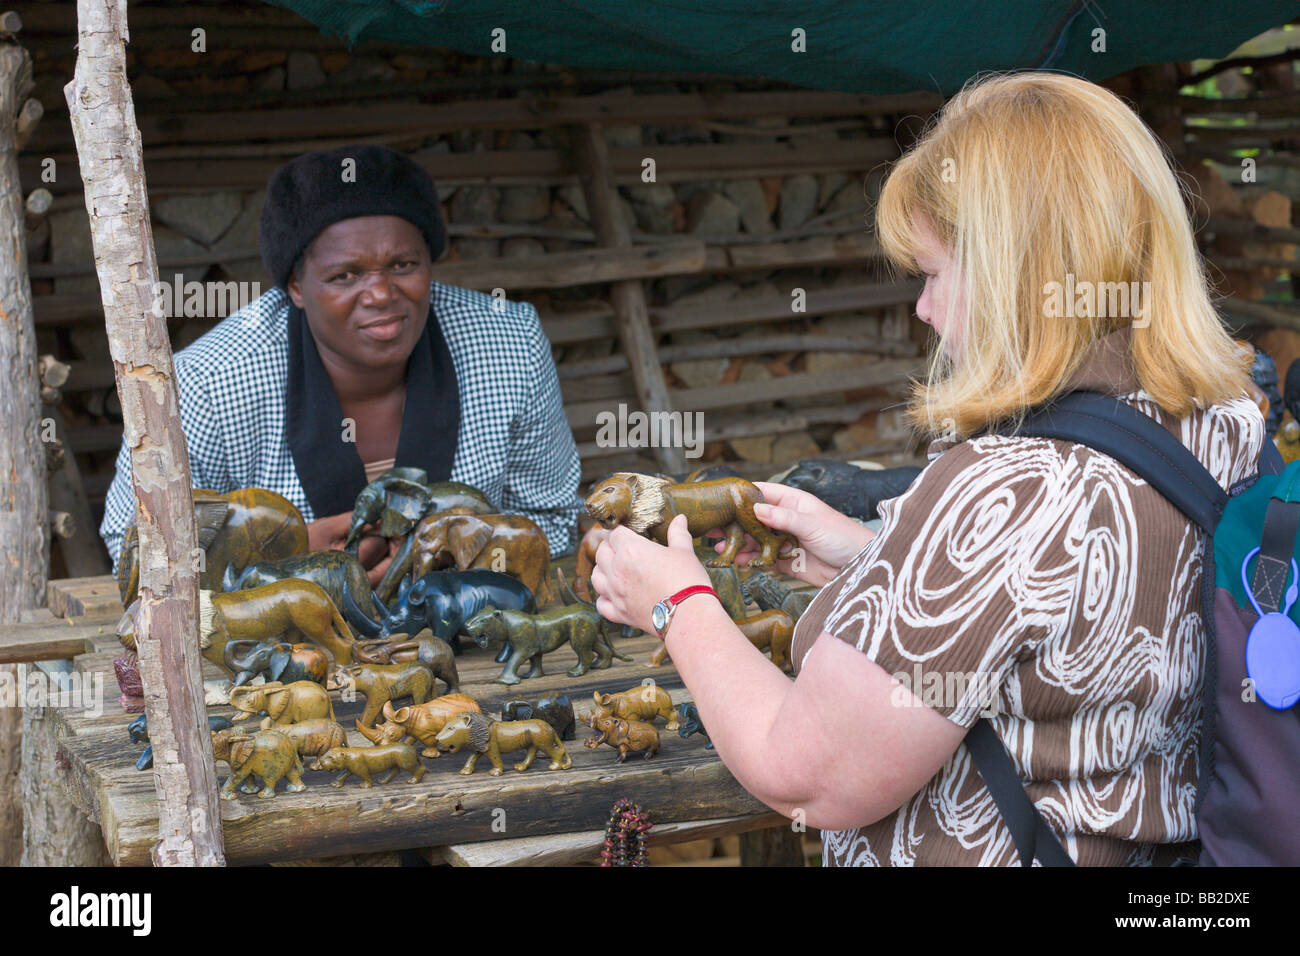 Tourist looking at souvenirs, Swaziland - Stock Image